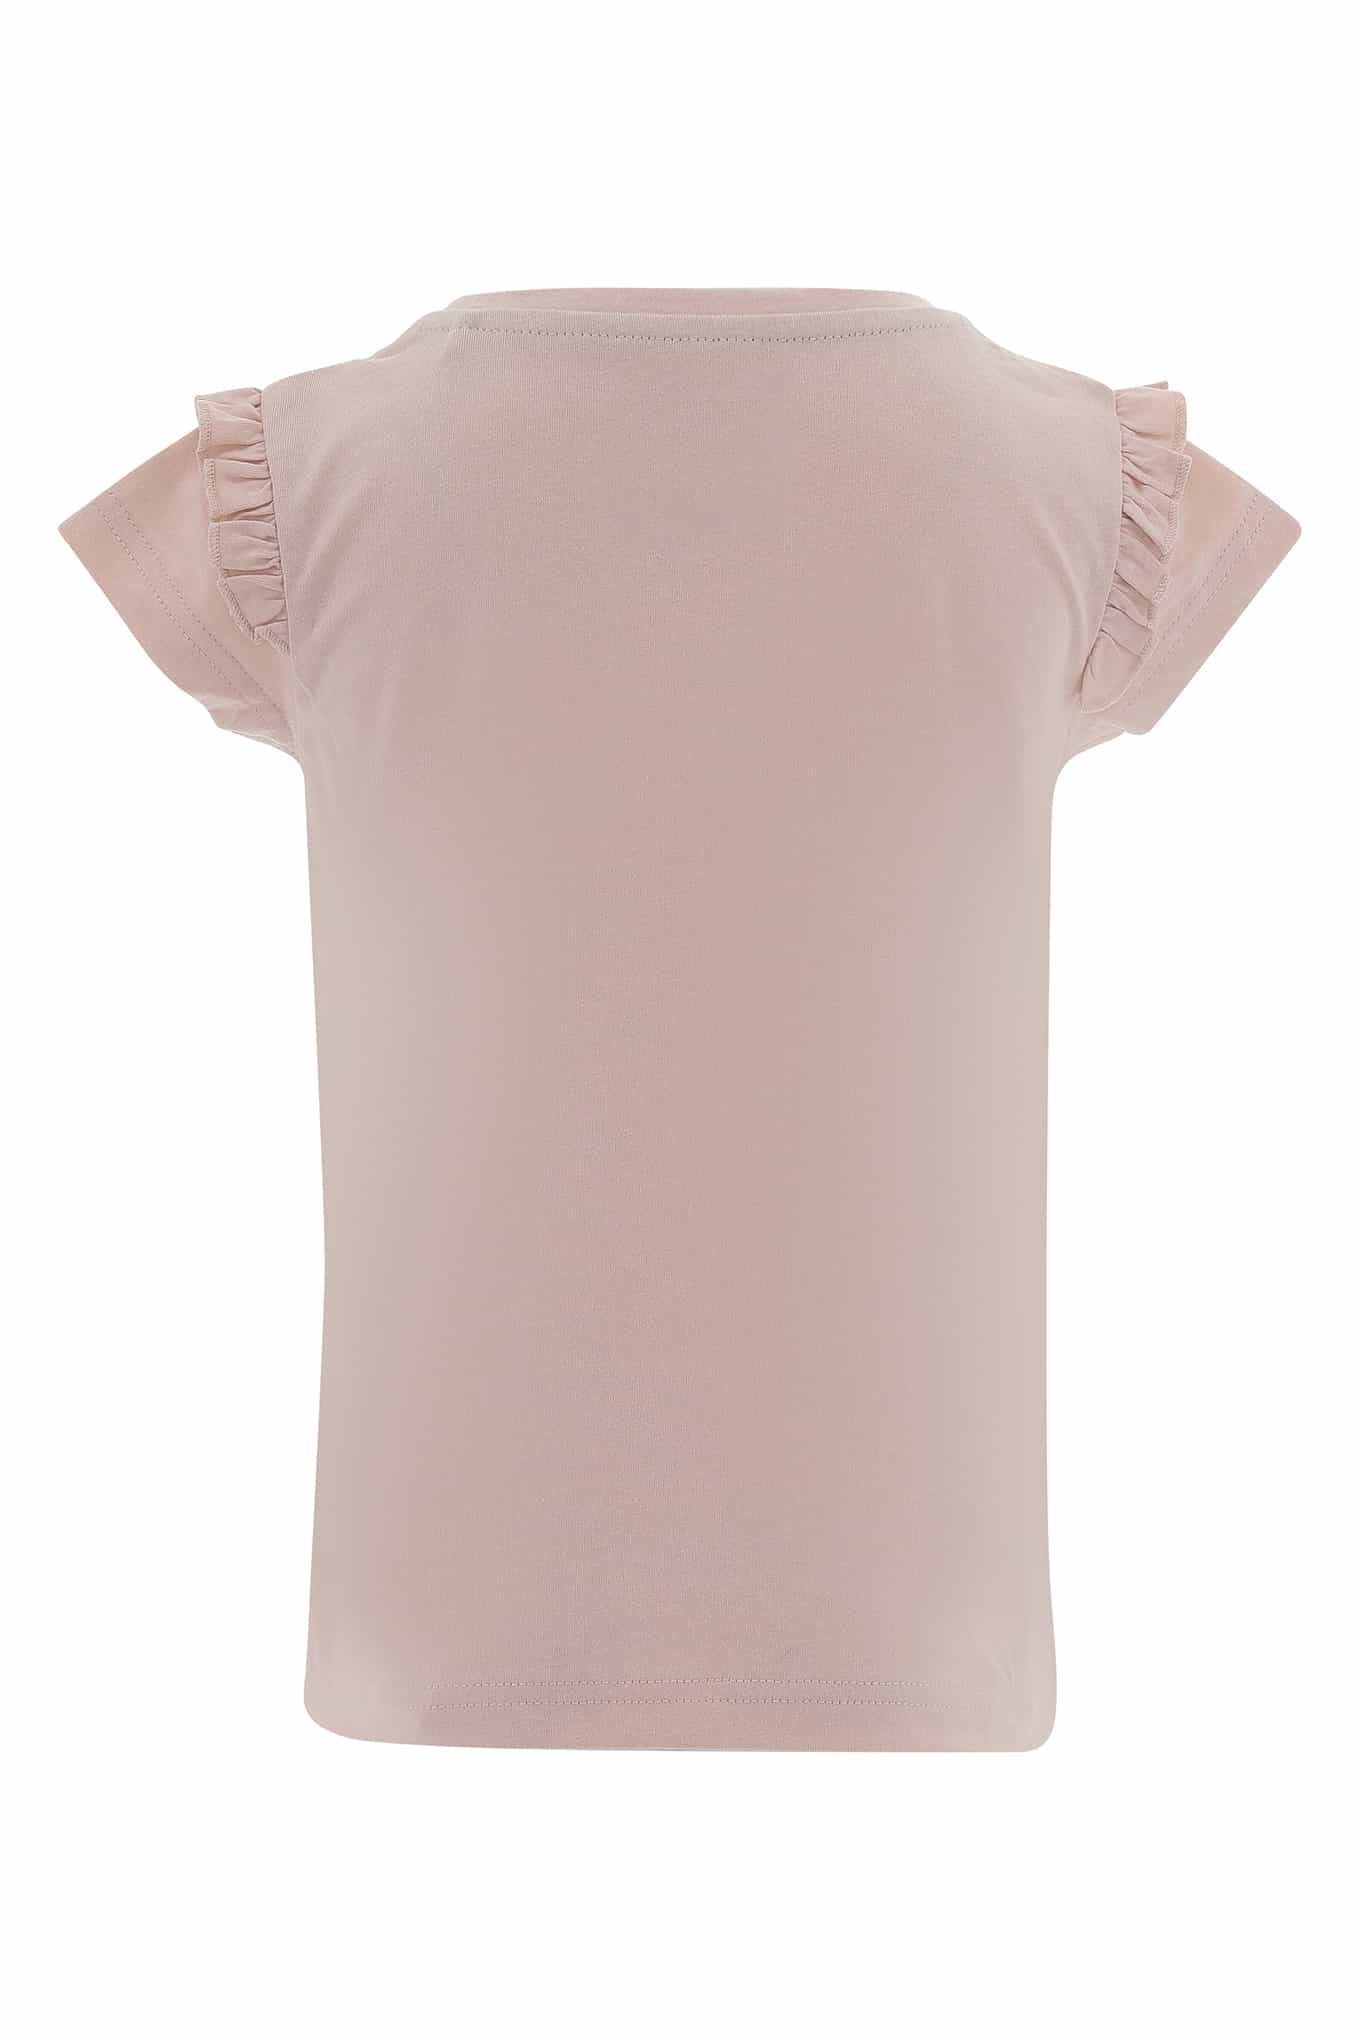 T-Shirt Light Pink Sport Girl